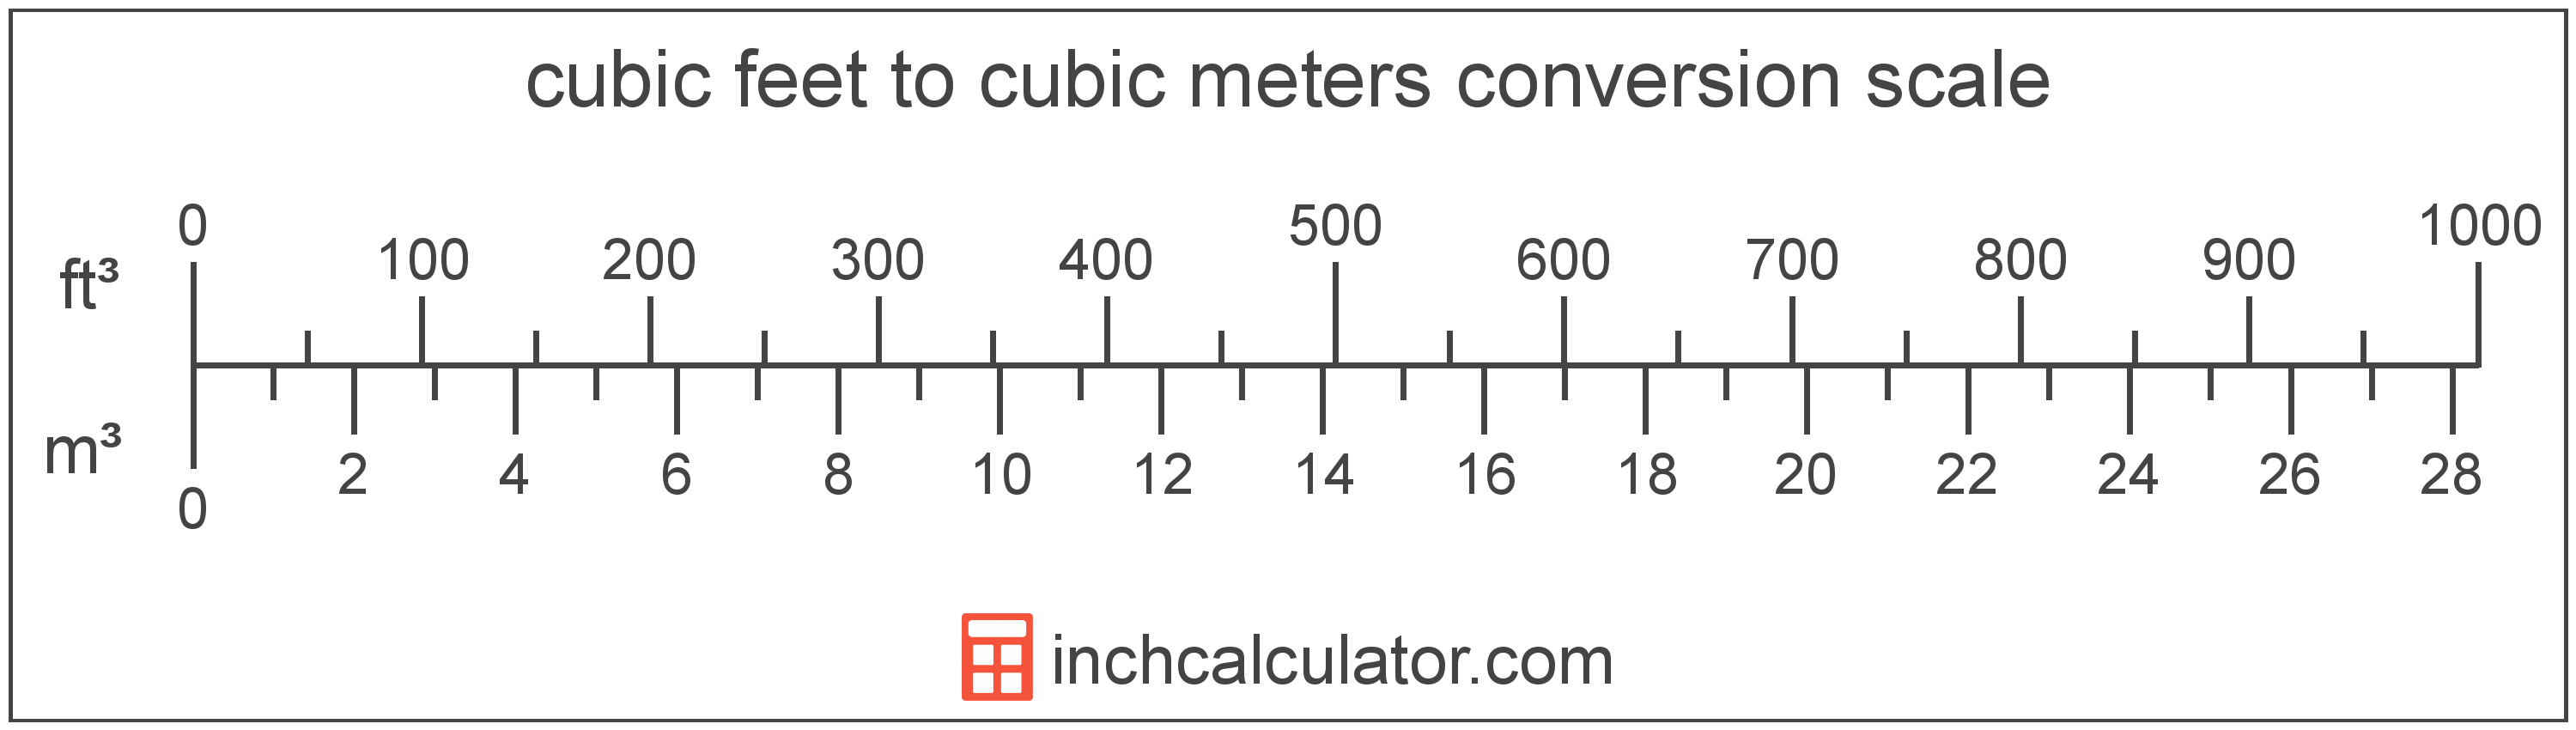 conversion scale showing cubic meters and equivalent cubic feet volume values